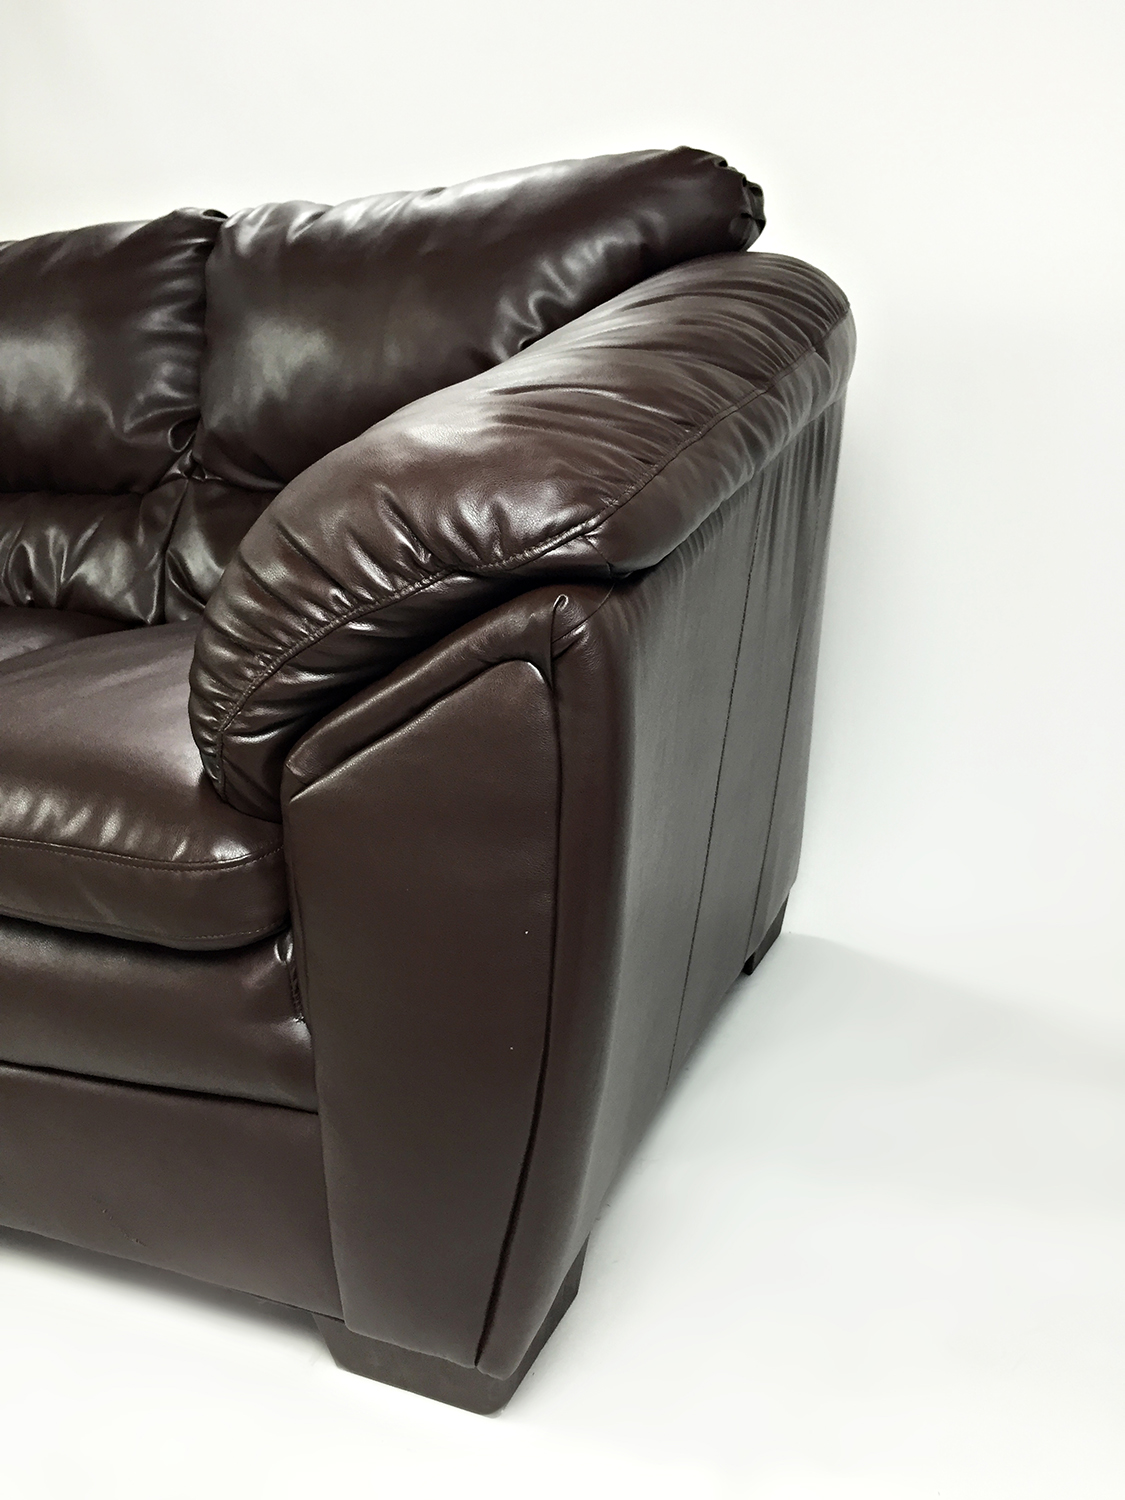 Surprising 81 Off Bobs Discount Furniture Brown Faux Leather Love Seat Sofas Caraccident5 Cool Chair Designs And Ideas Caraccident5Info